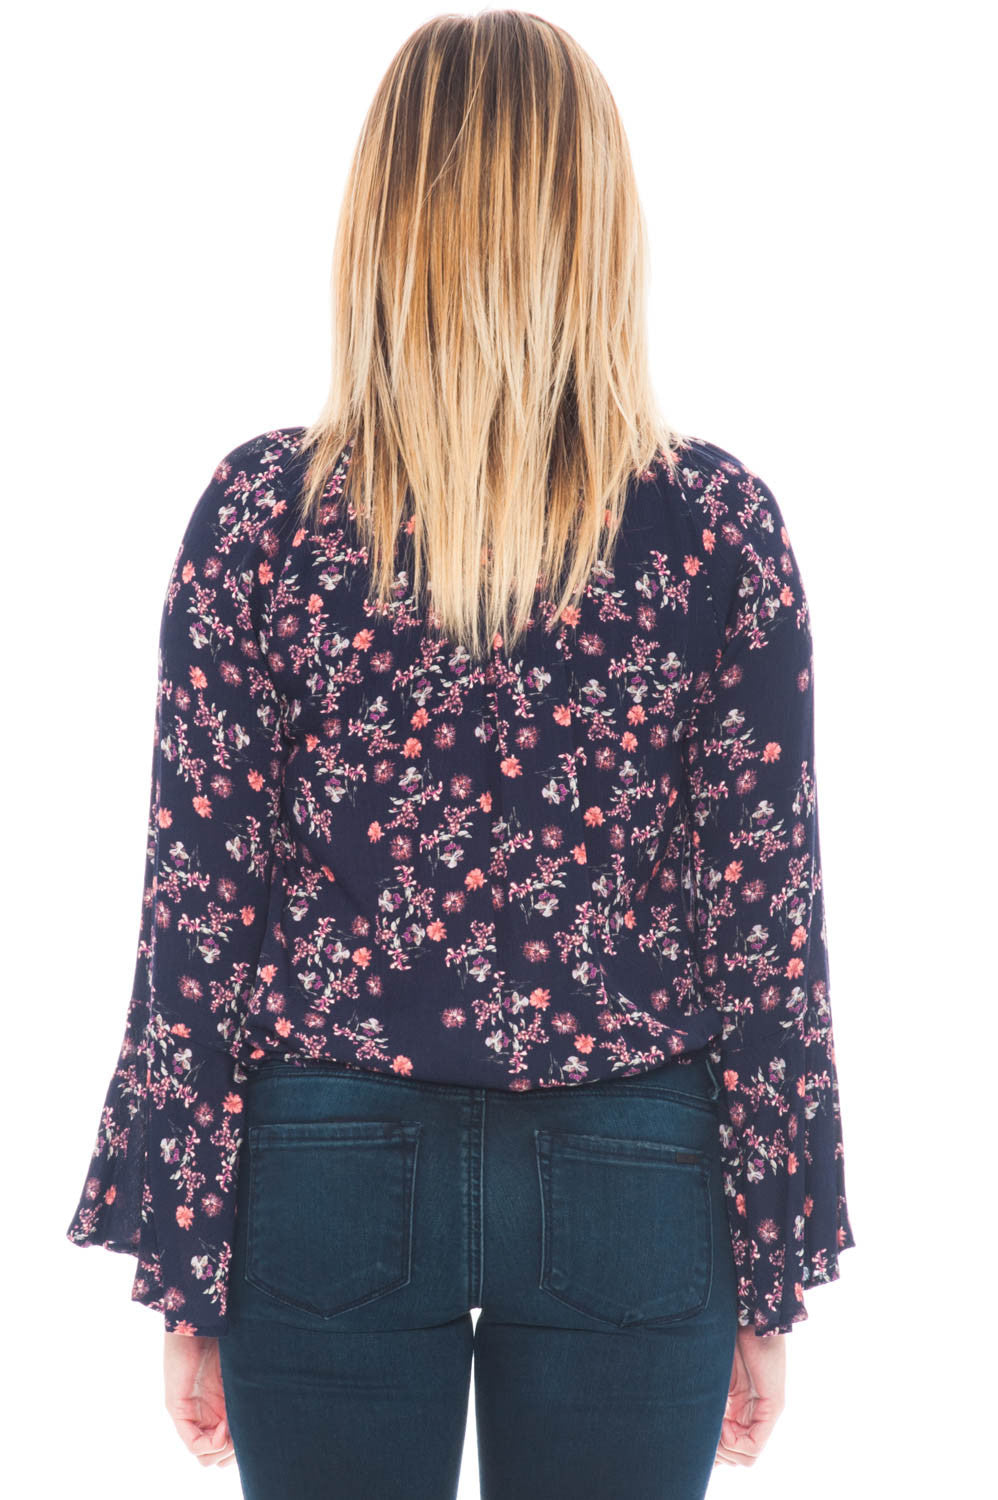 Blouse - Short Floral Bell Sleeve Top by Lush